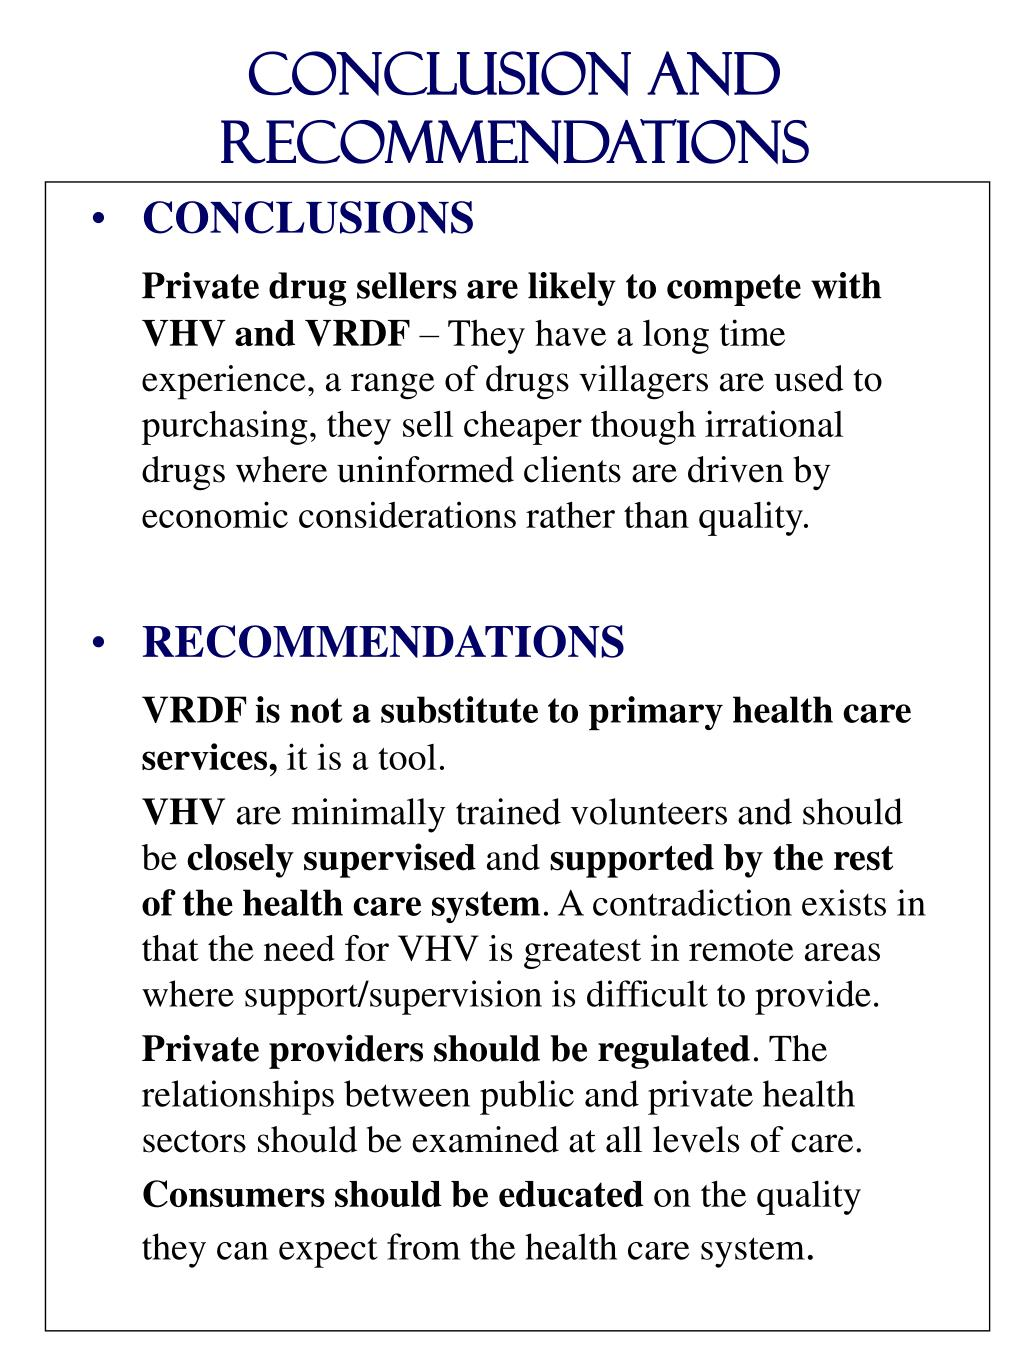 Conclusion and recommendations